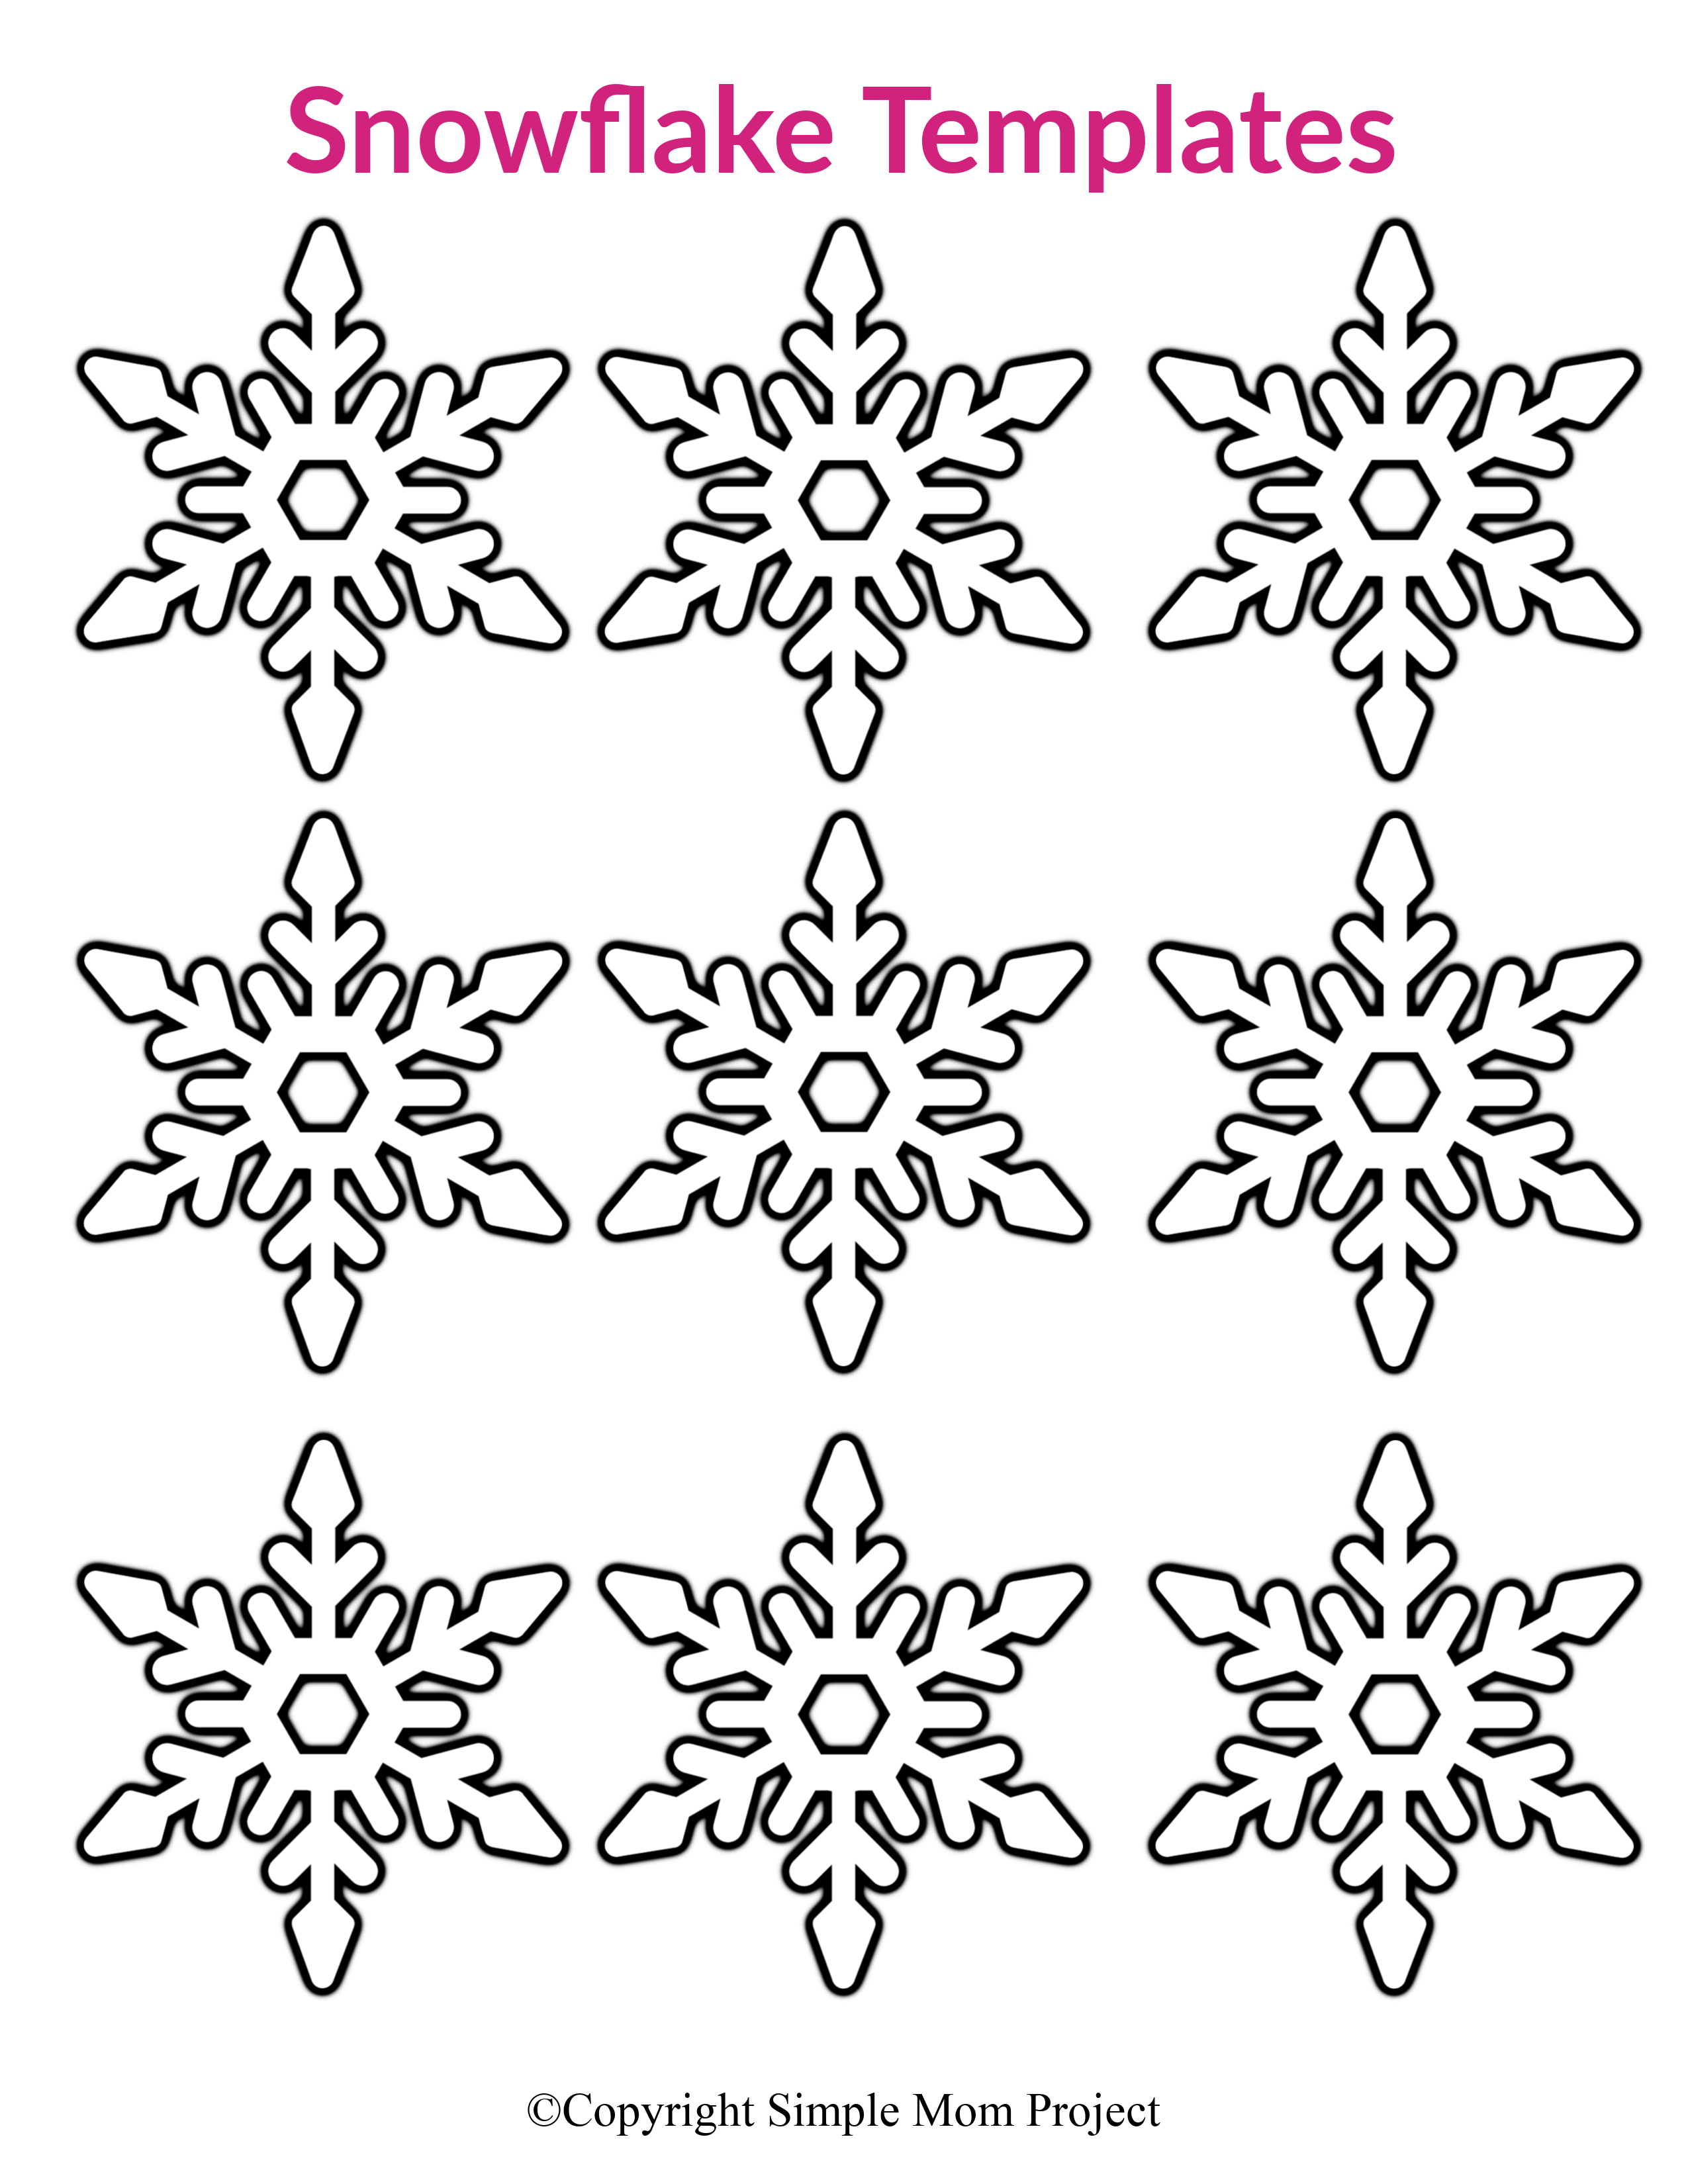 Free Printable Small Snowflake Patterns, Templates and Stencils